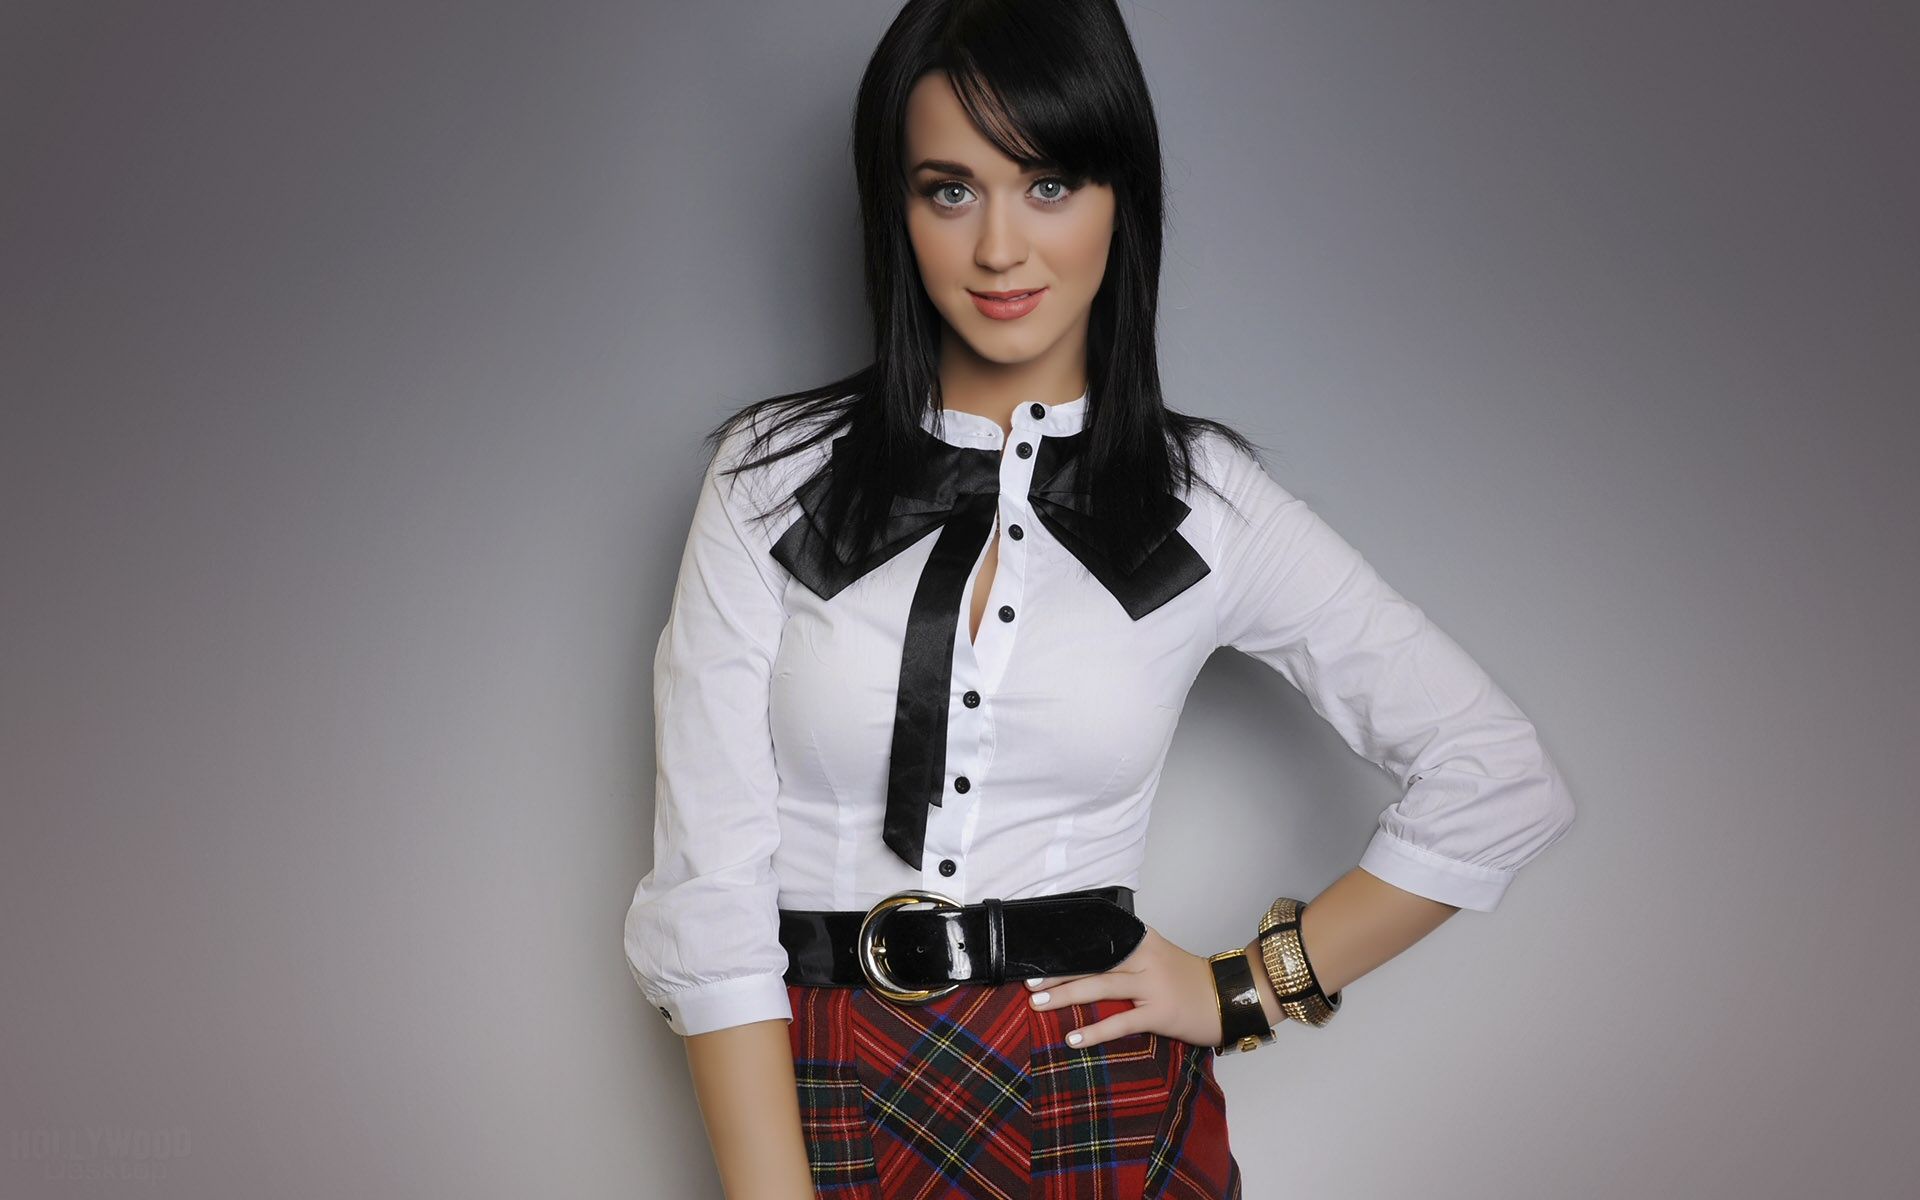 ... Katy Perry Wallpaper ...